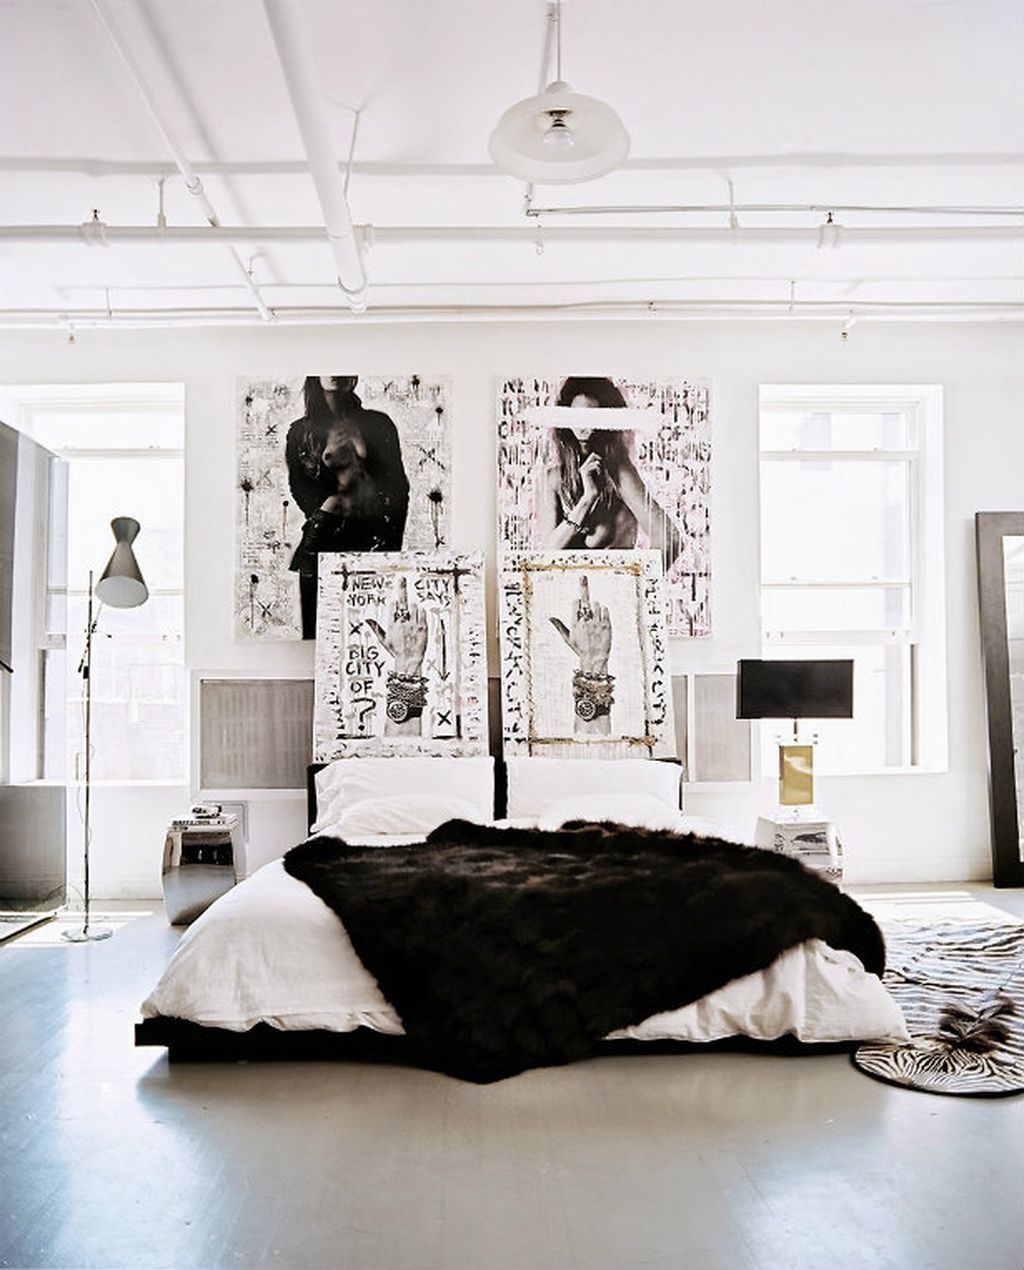 Loft style bedroom ideas  Awesome  Totally Adorable Loft Style Bedroom Decoration Ideas